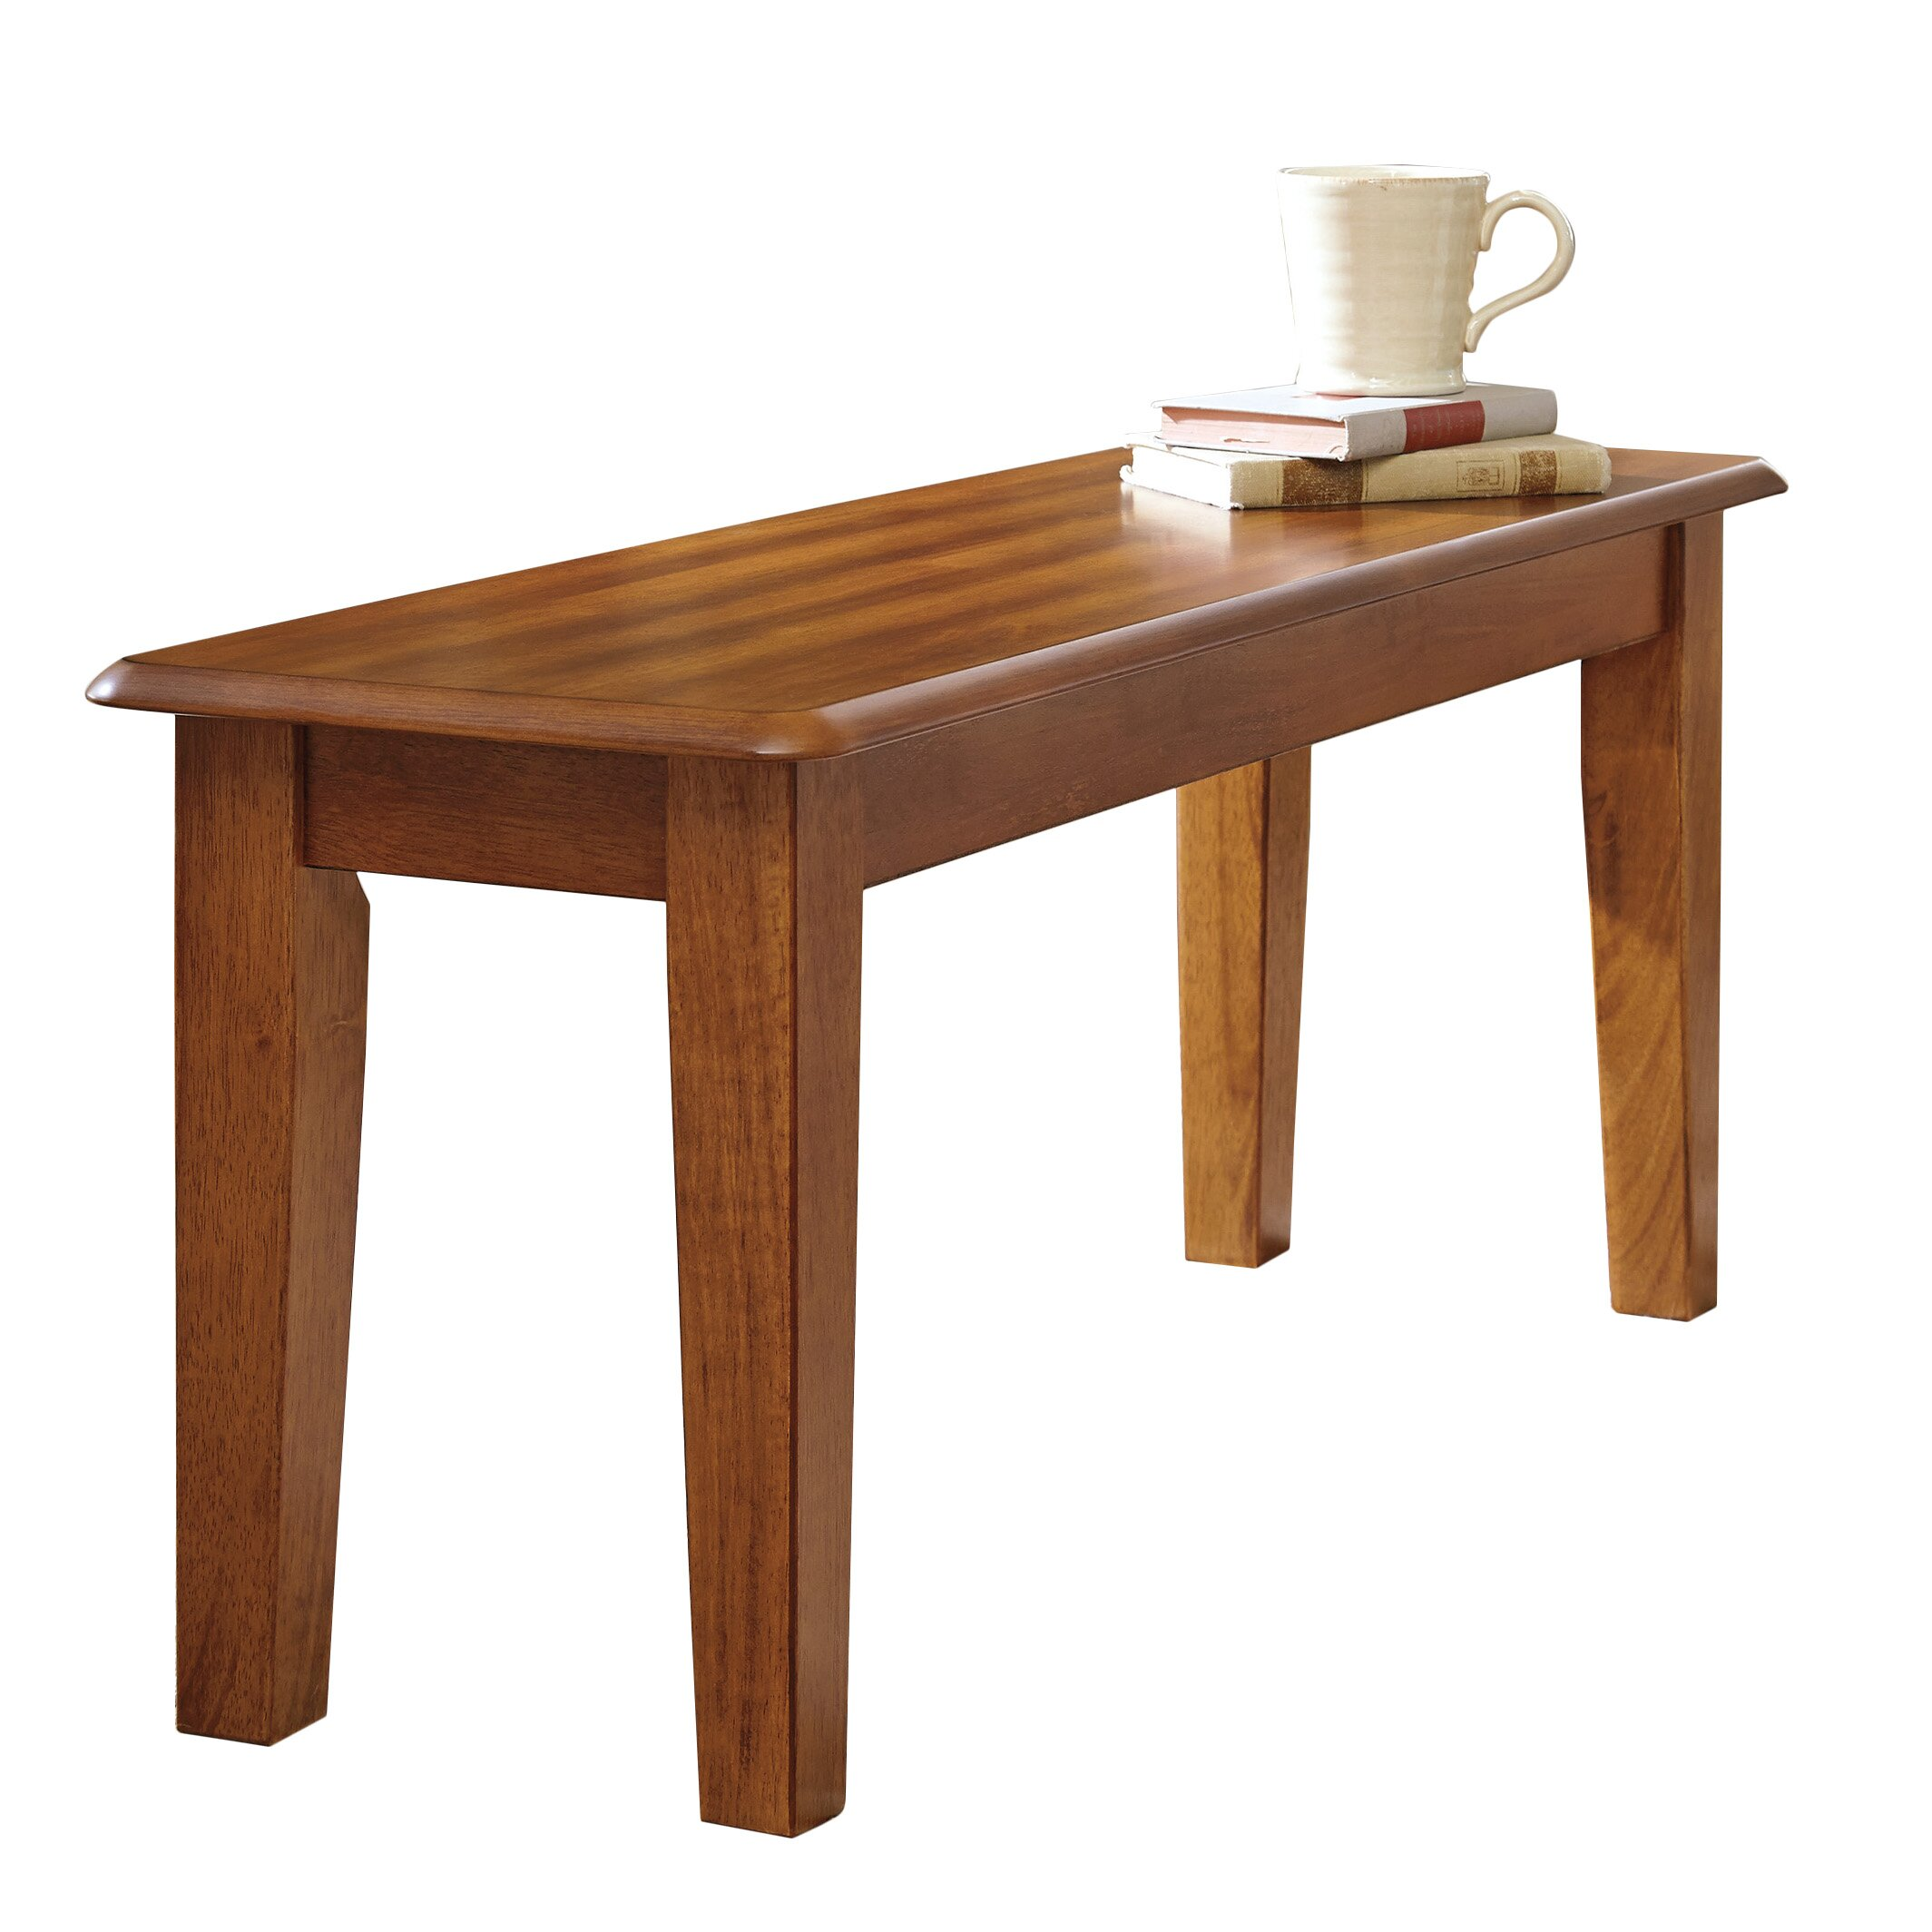 Loon Peak Kaiser Point Wood Kitchen Bench & Reviews